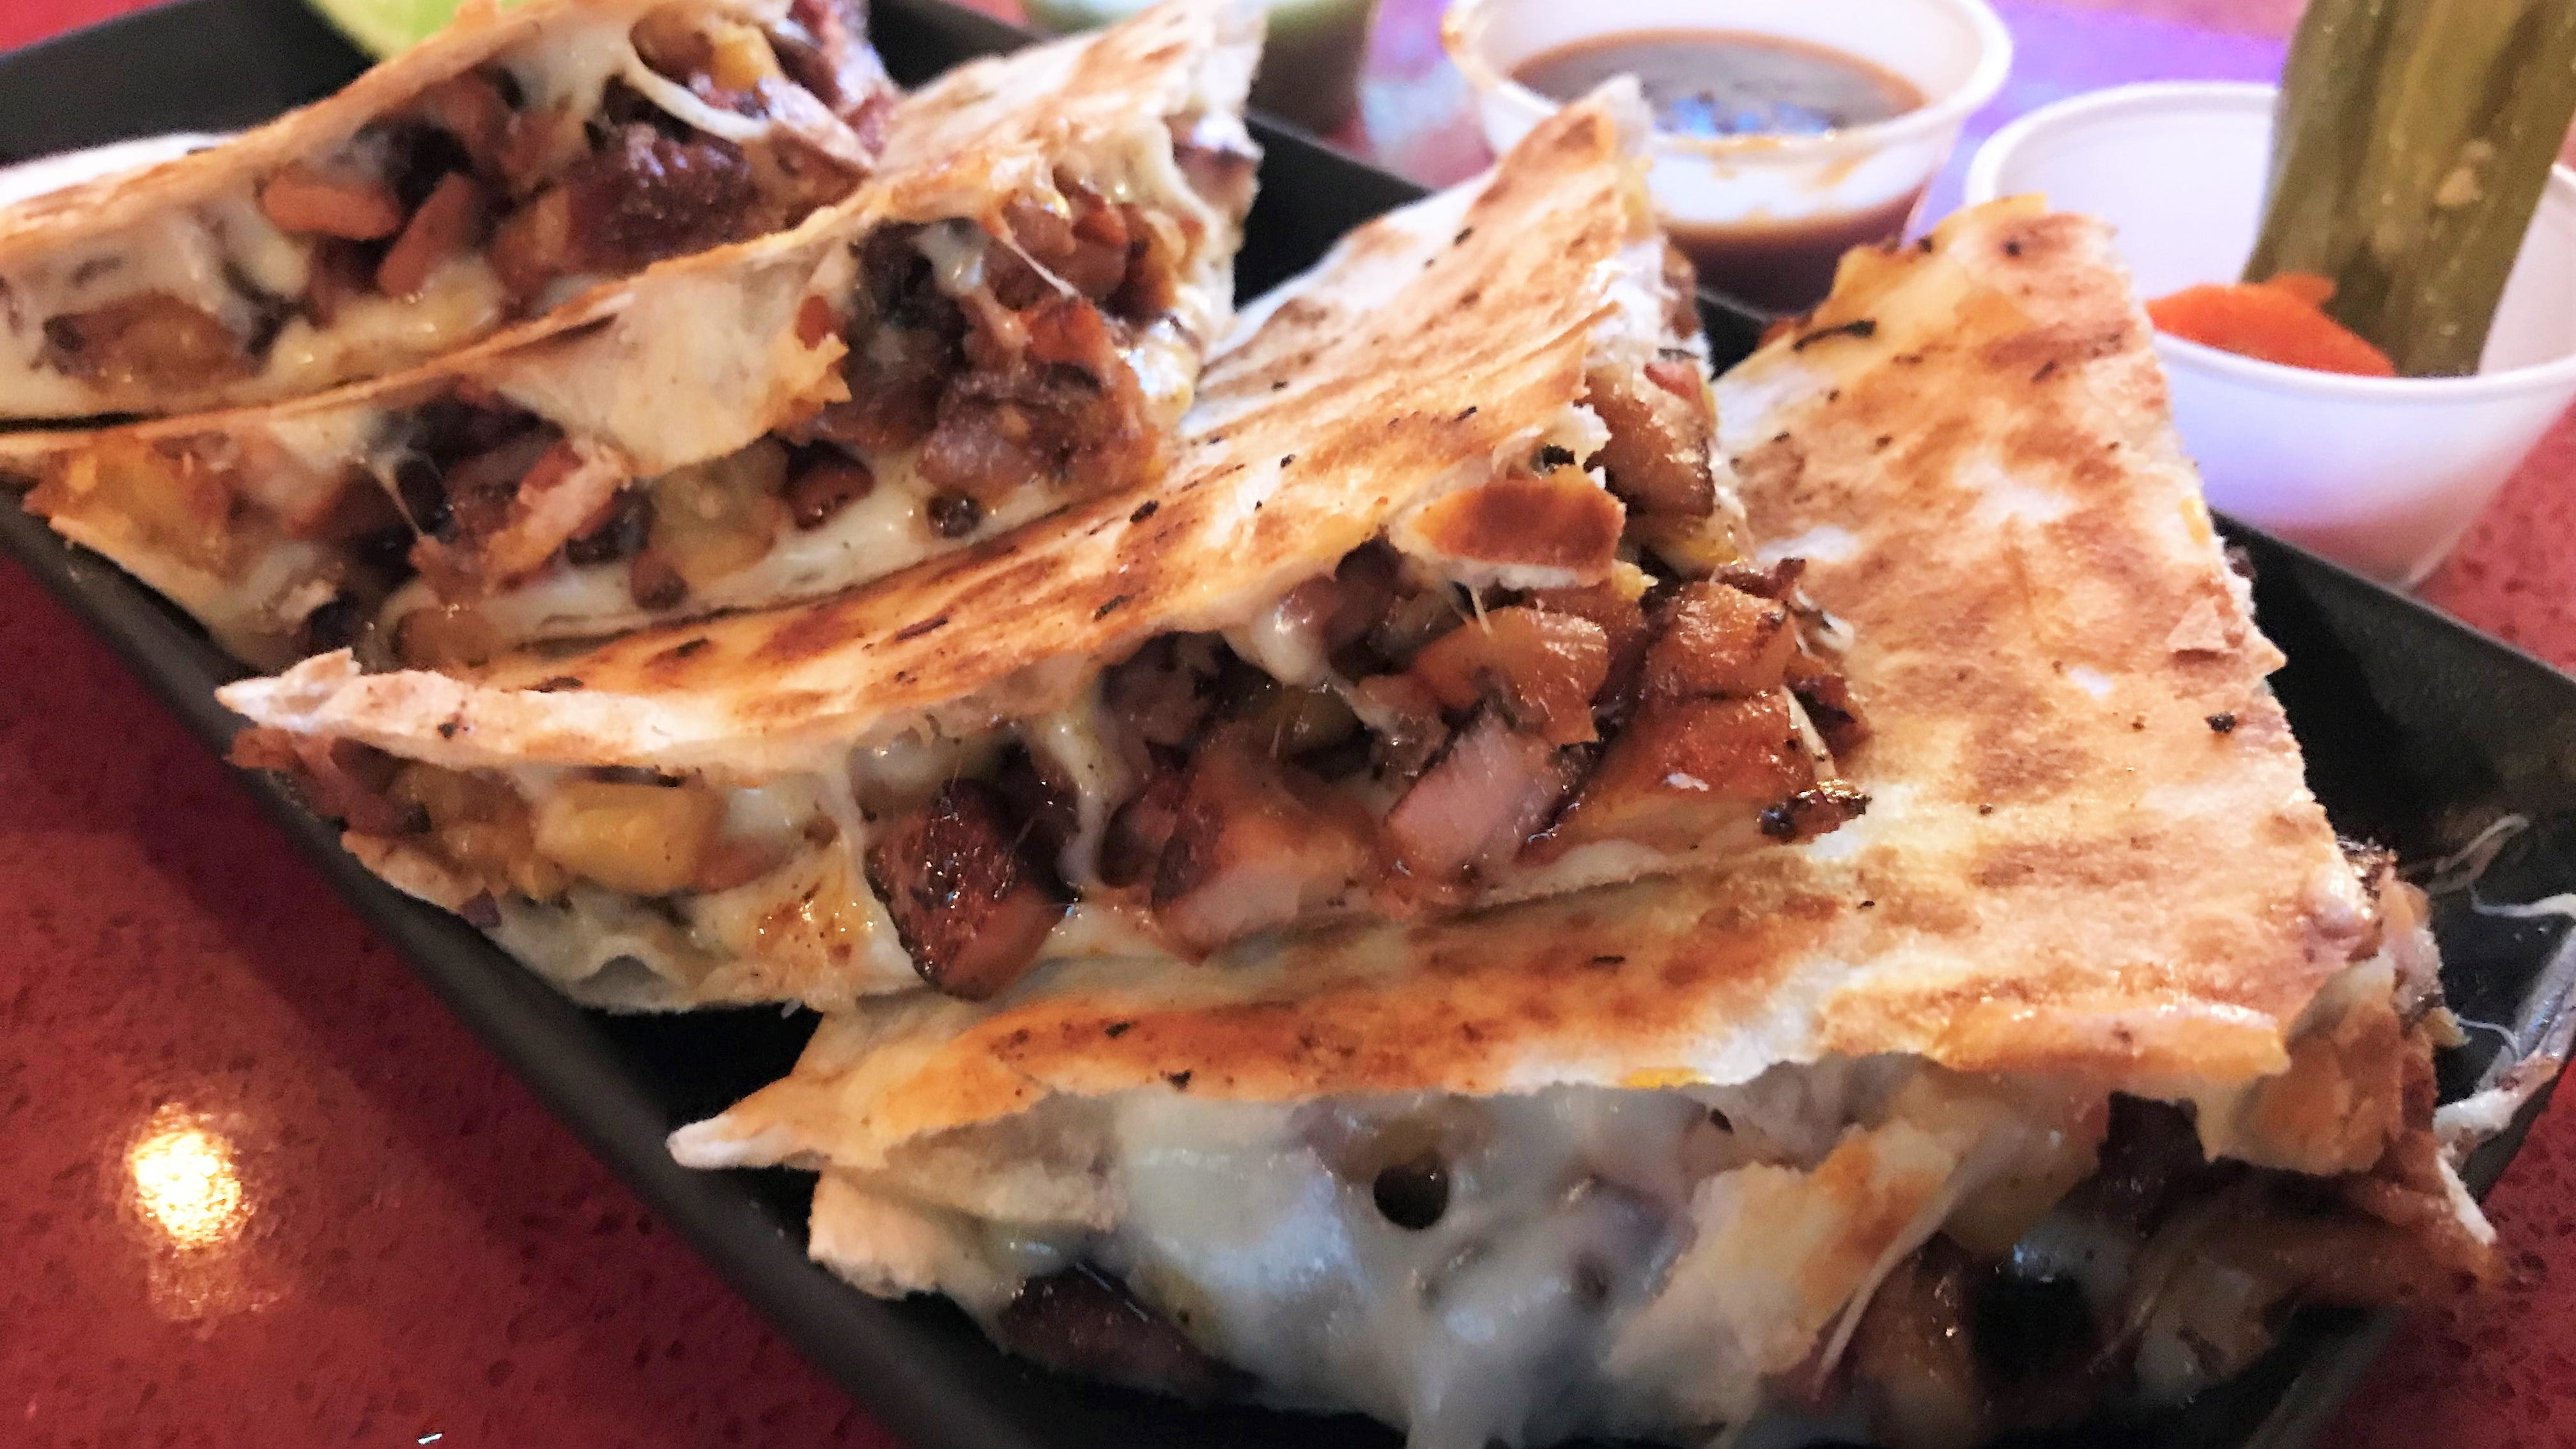 Al pastor, grilled steak, cubed ham, bacon, tangy pineapple and melted cheese fill the Gringa Especial at Samano's Taqueria & Mexican Restaurant in Fishers on opening day Feb. 19, 2019.